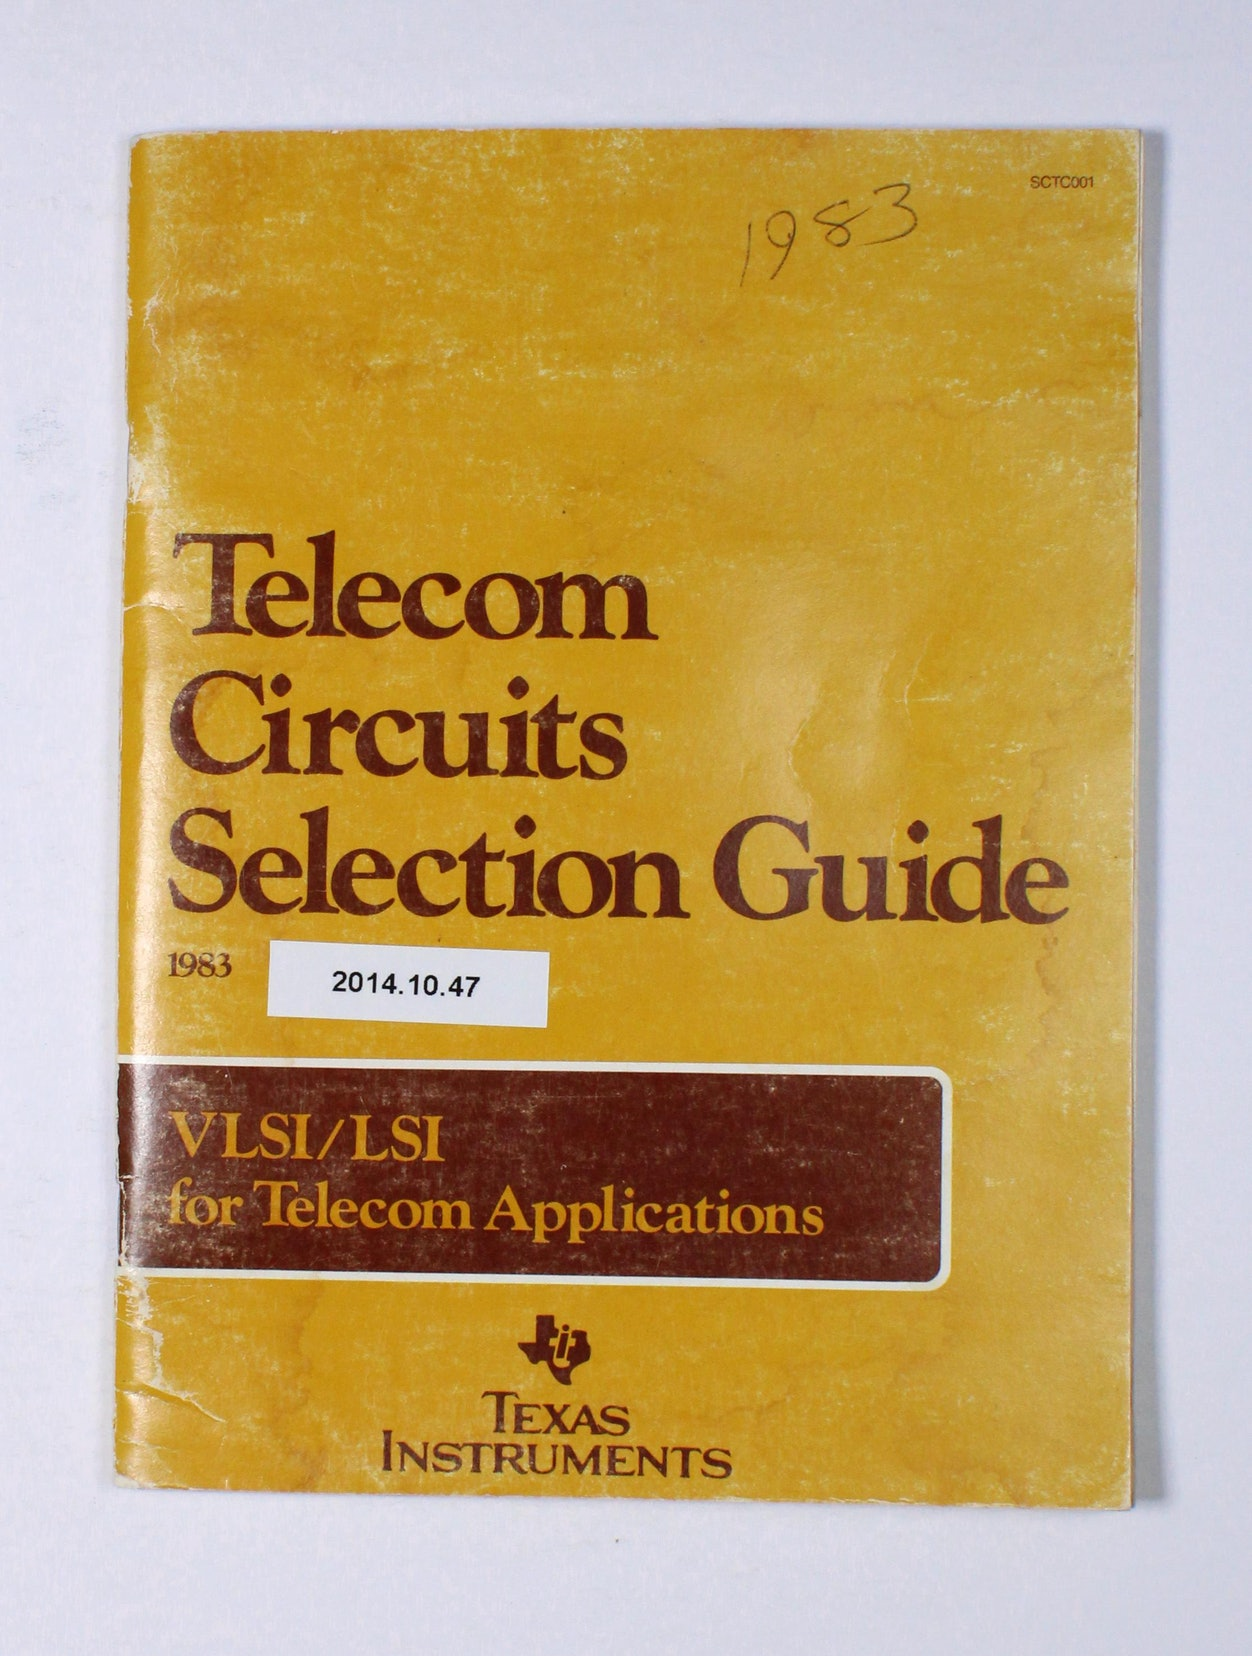 Telecom Circuits Selection Guide